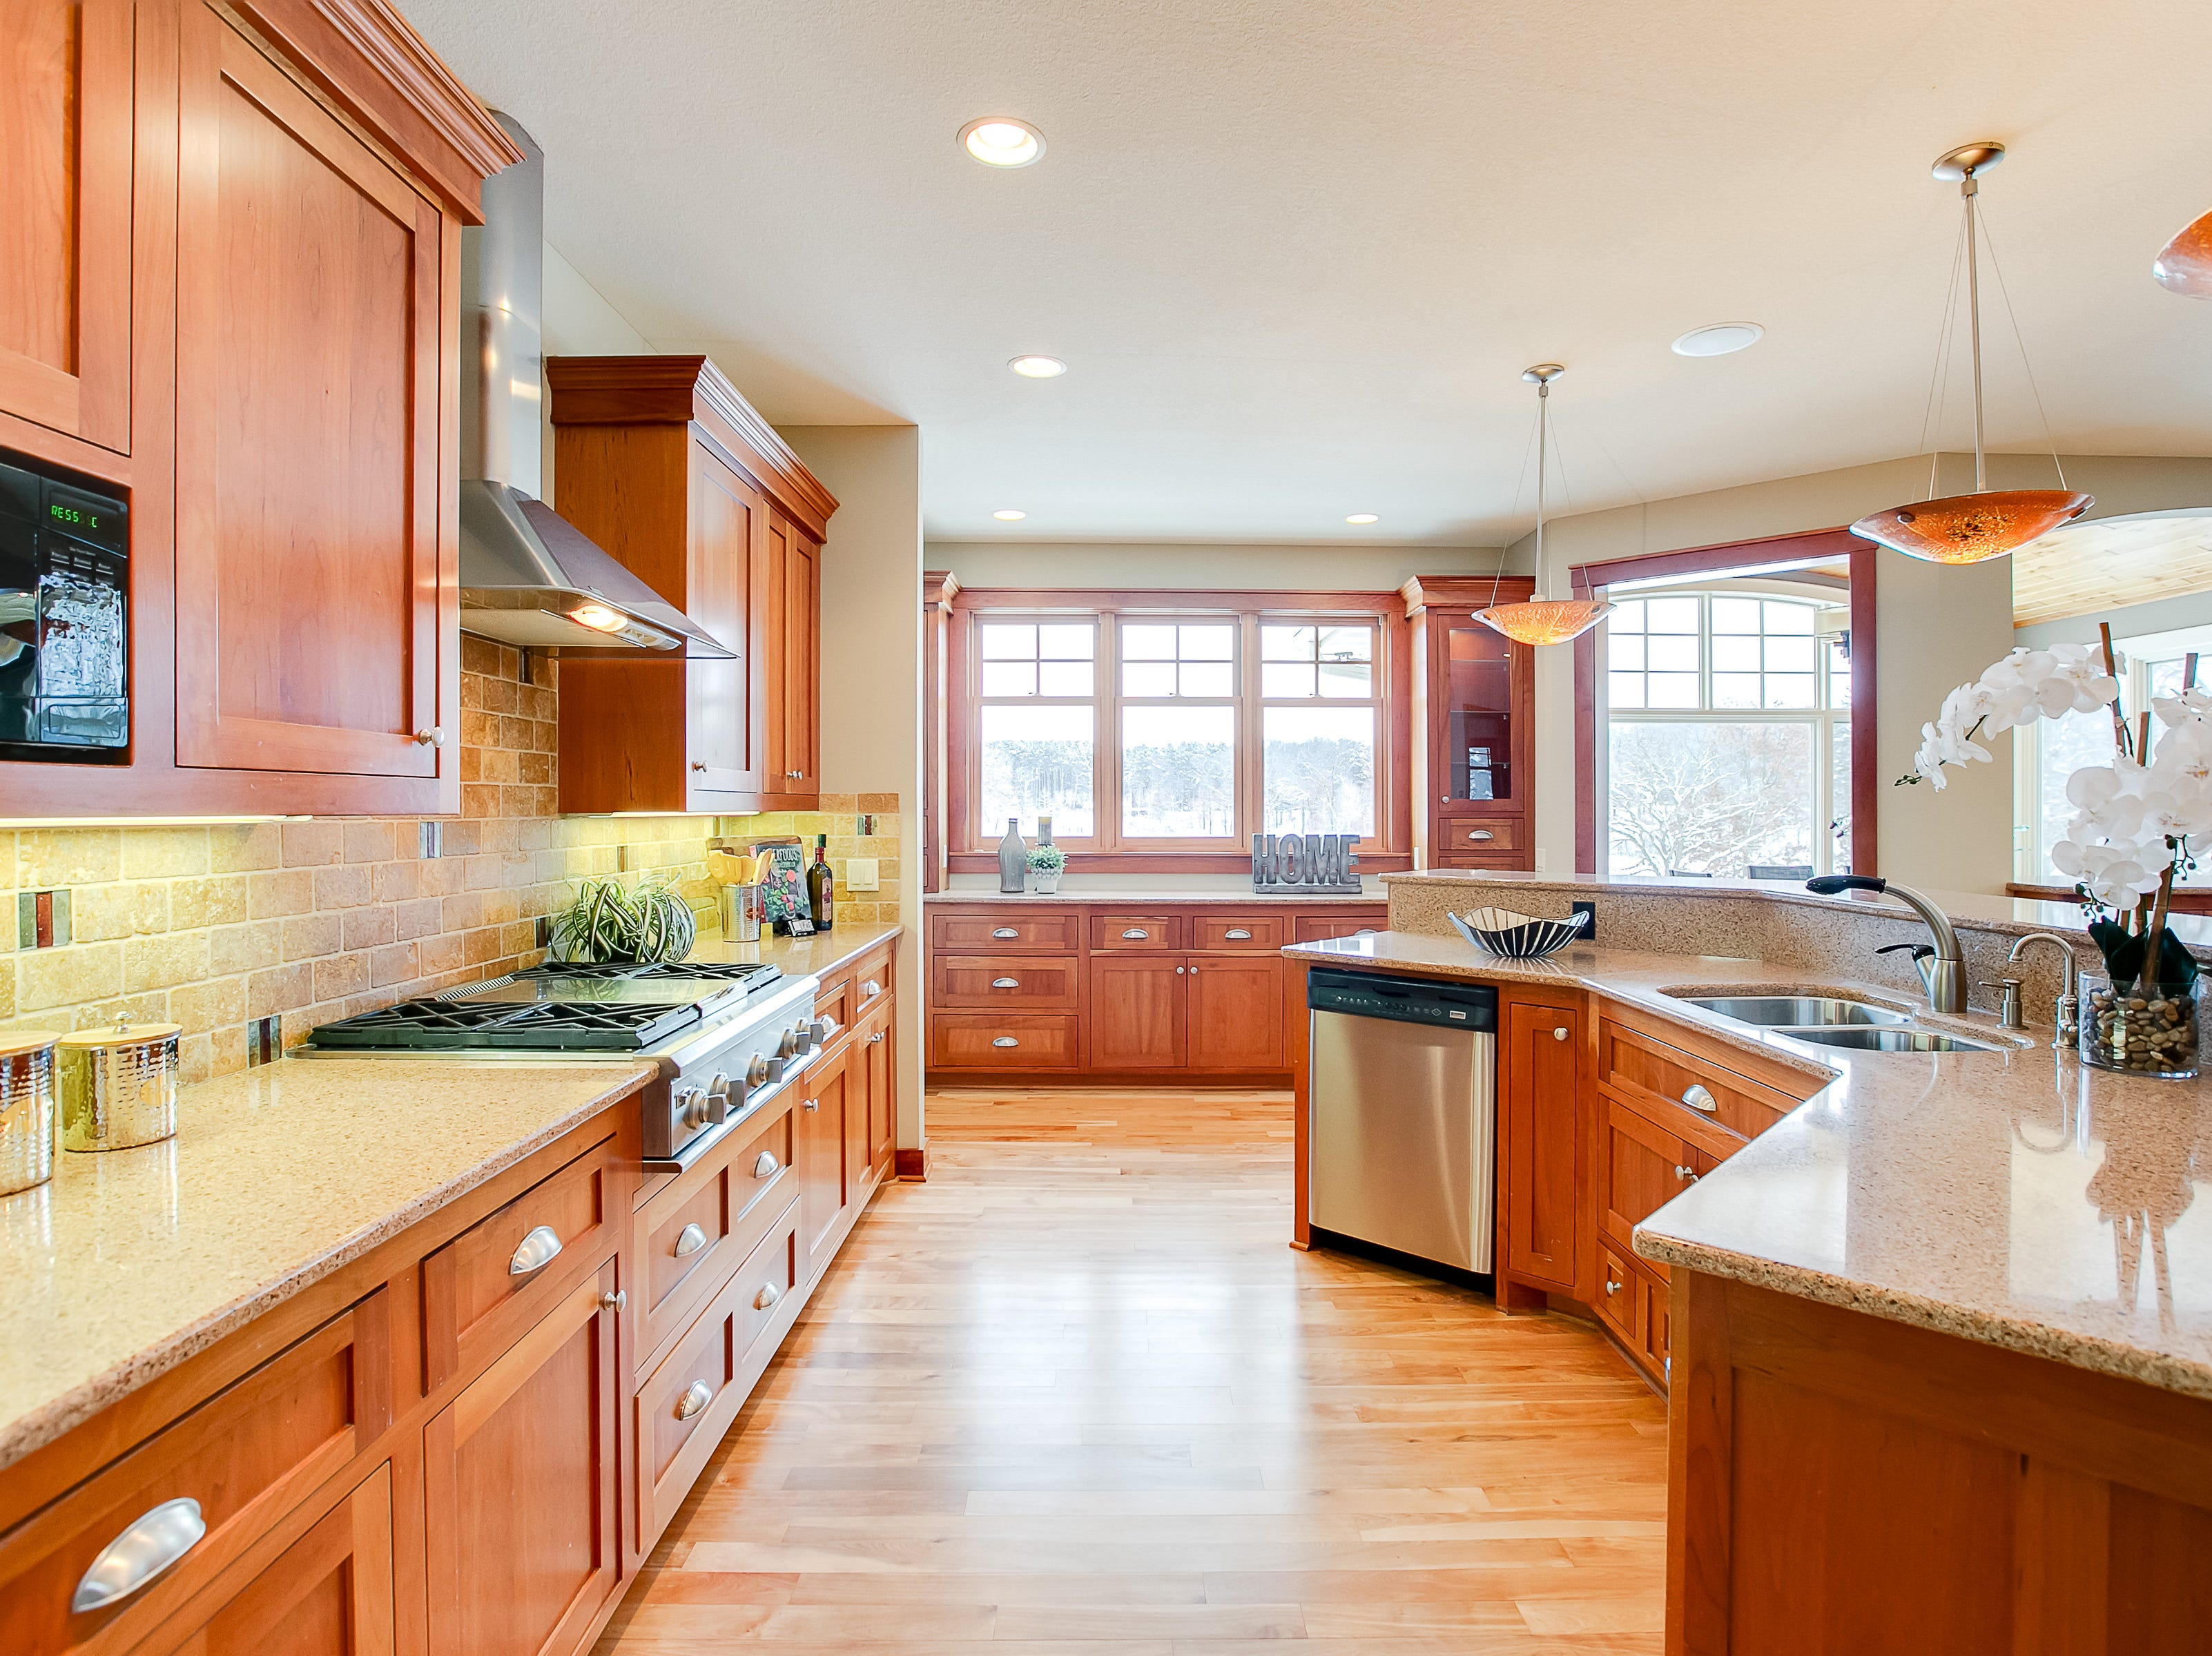 The kitchen features cherry cabinets, birch hardwood floors and Cambria countertops.